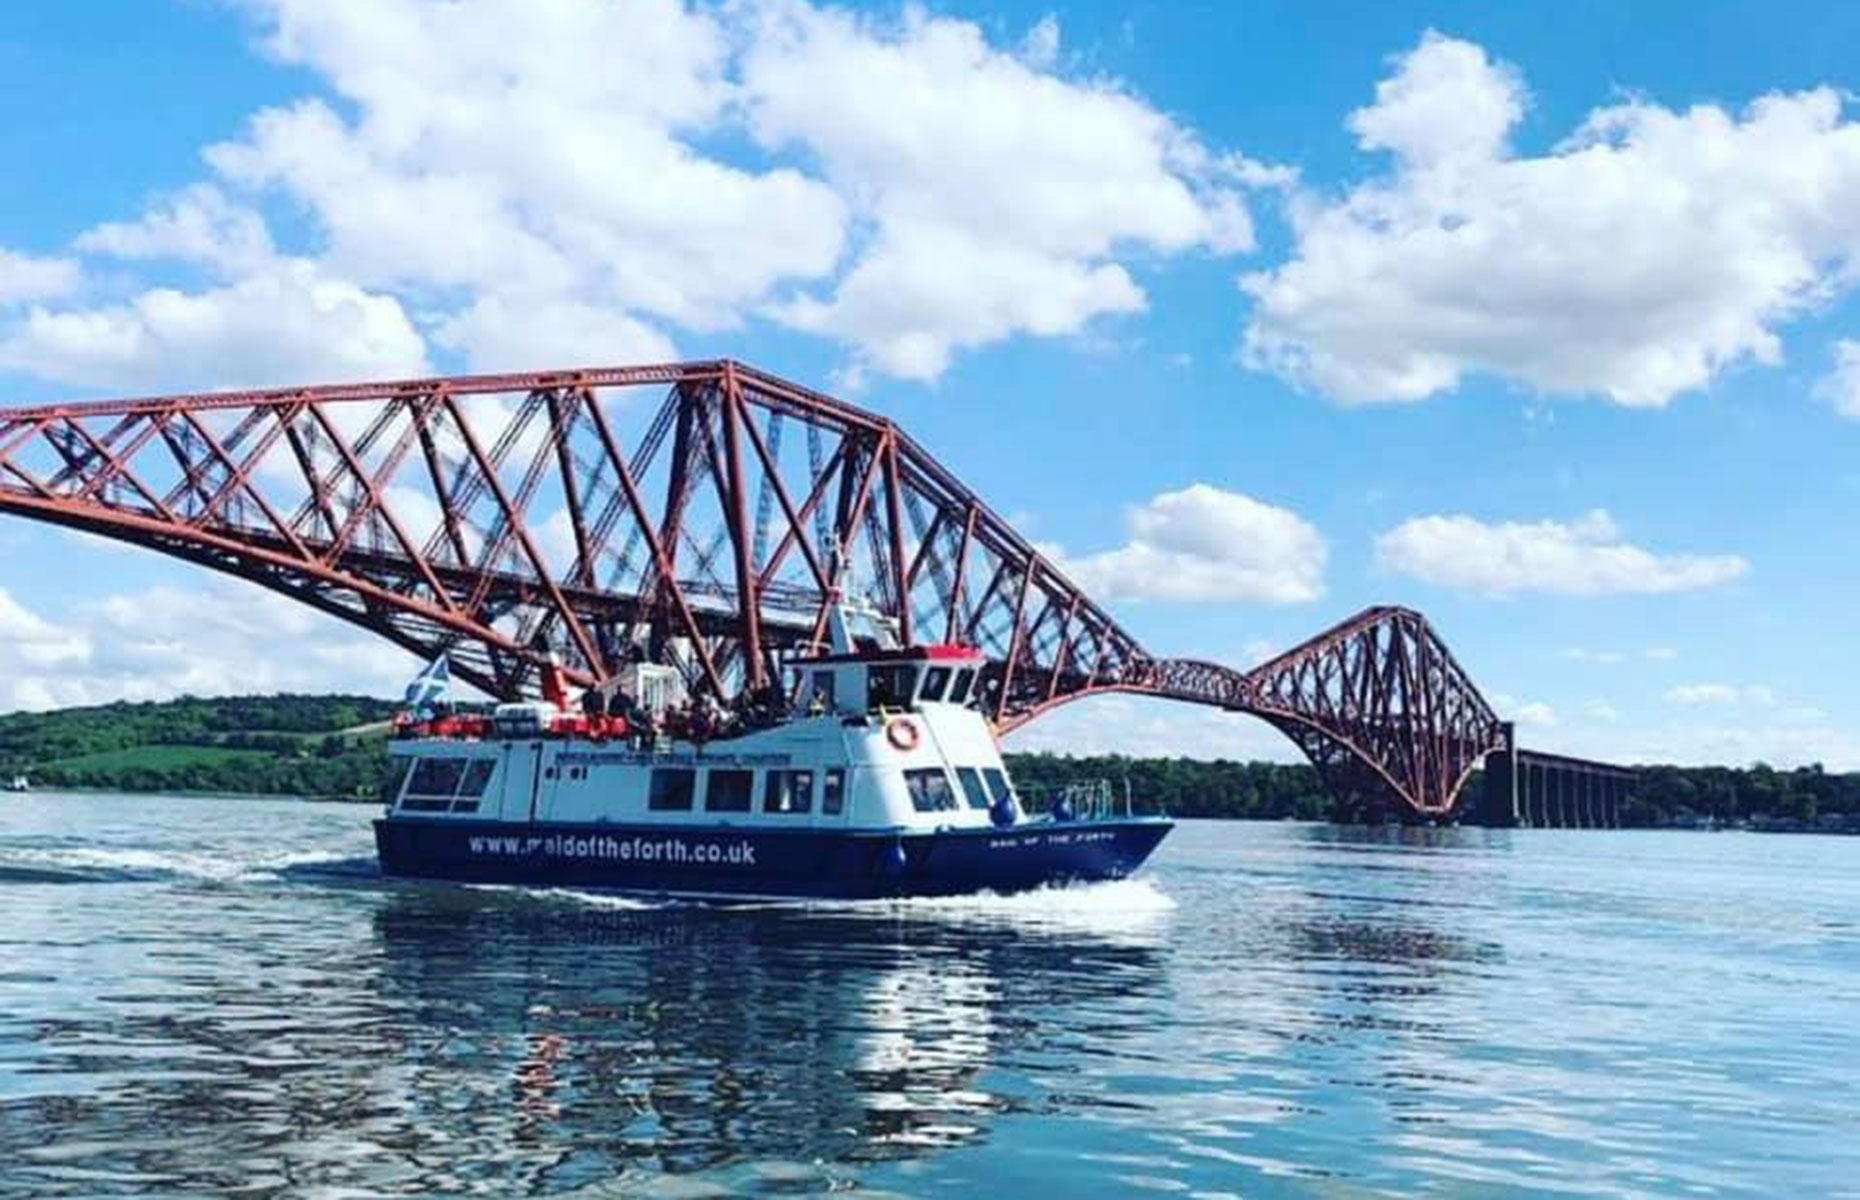 Maid of the Forth (Image: Maid of the Forth/Facebook)